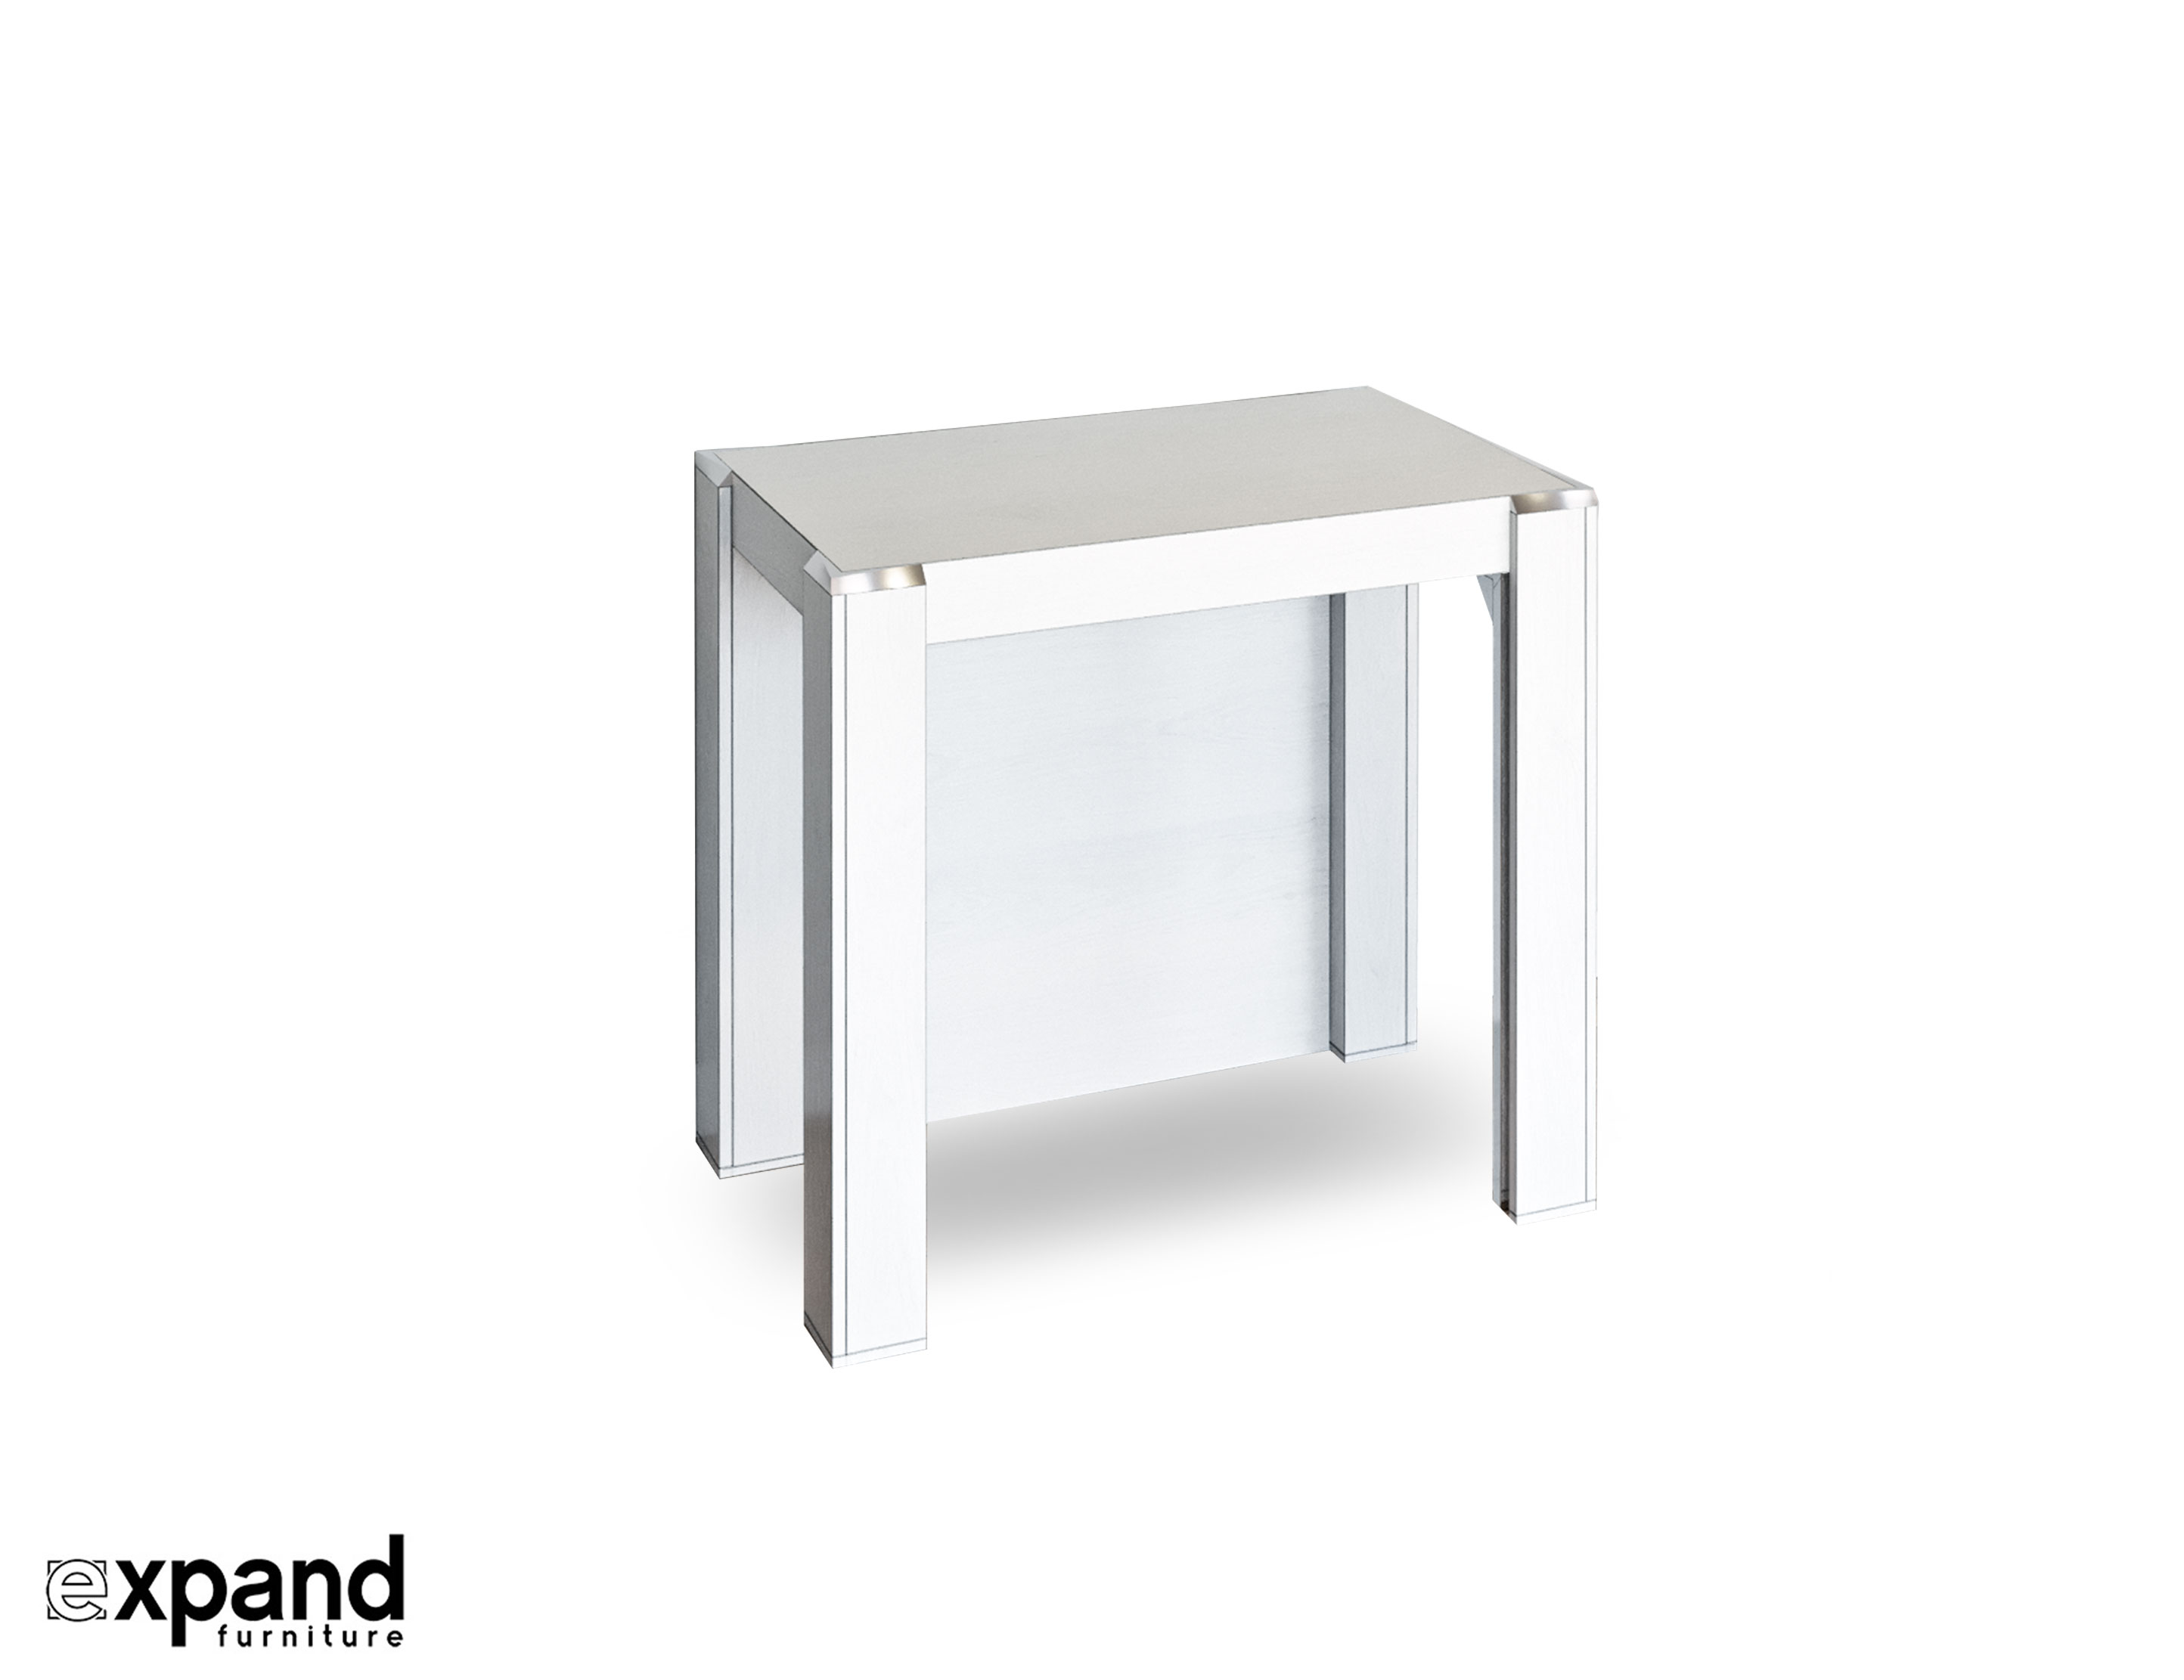 Expanda Console with Contained Extensions